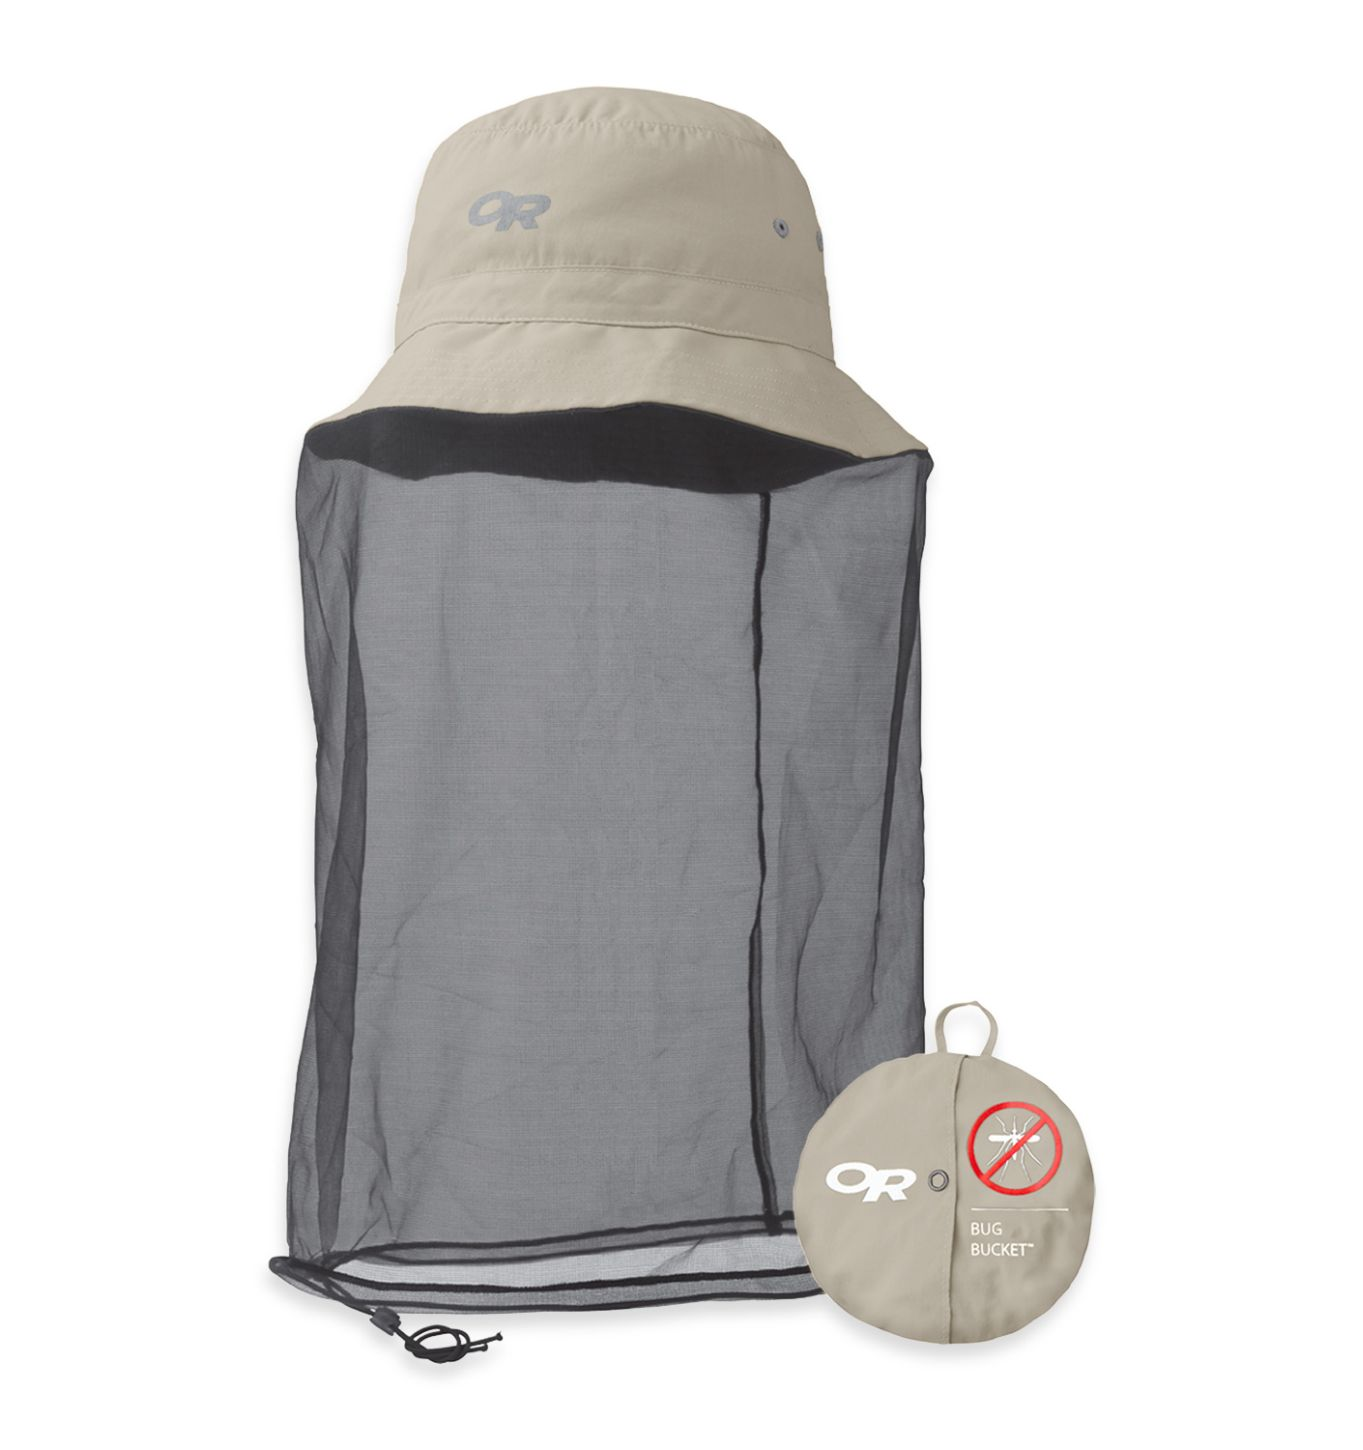 Outdoor Research Bug Bucket khaki-30